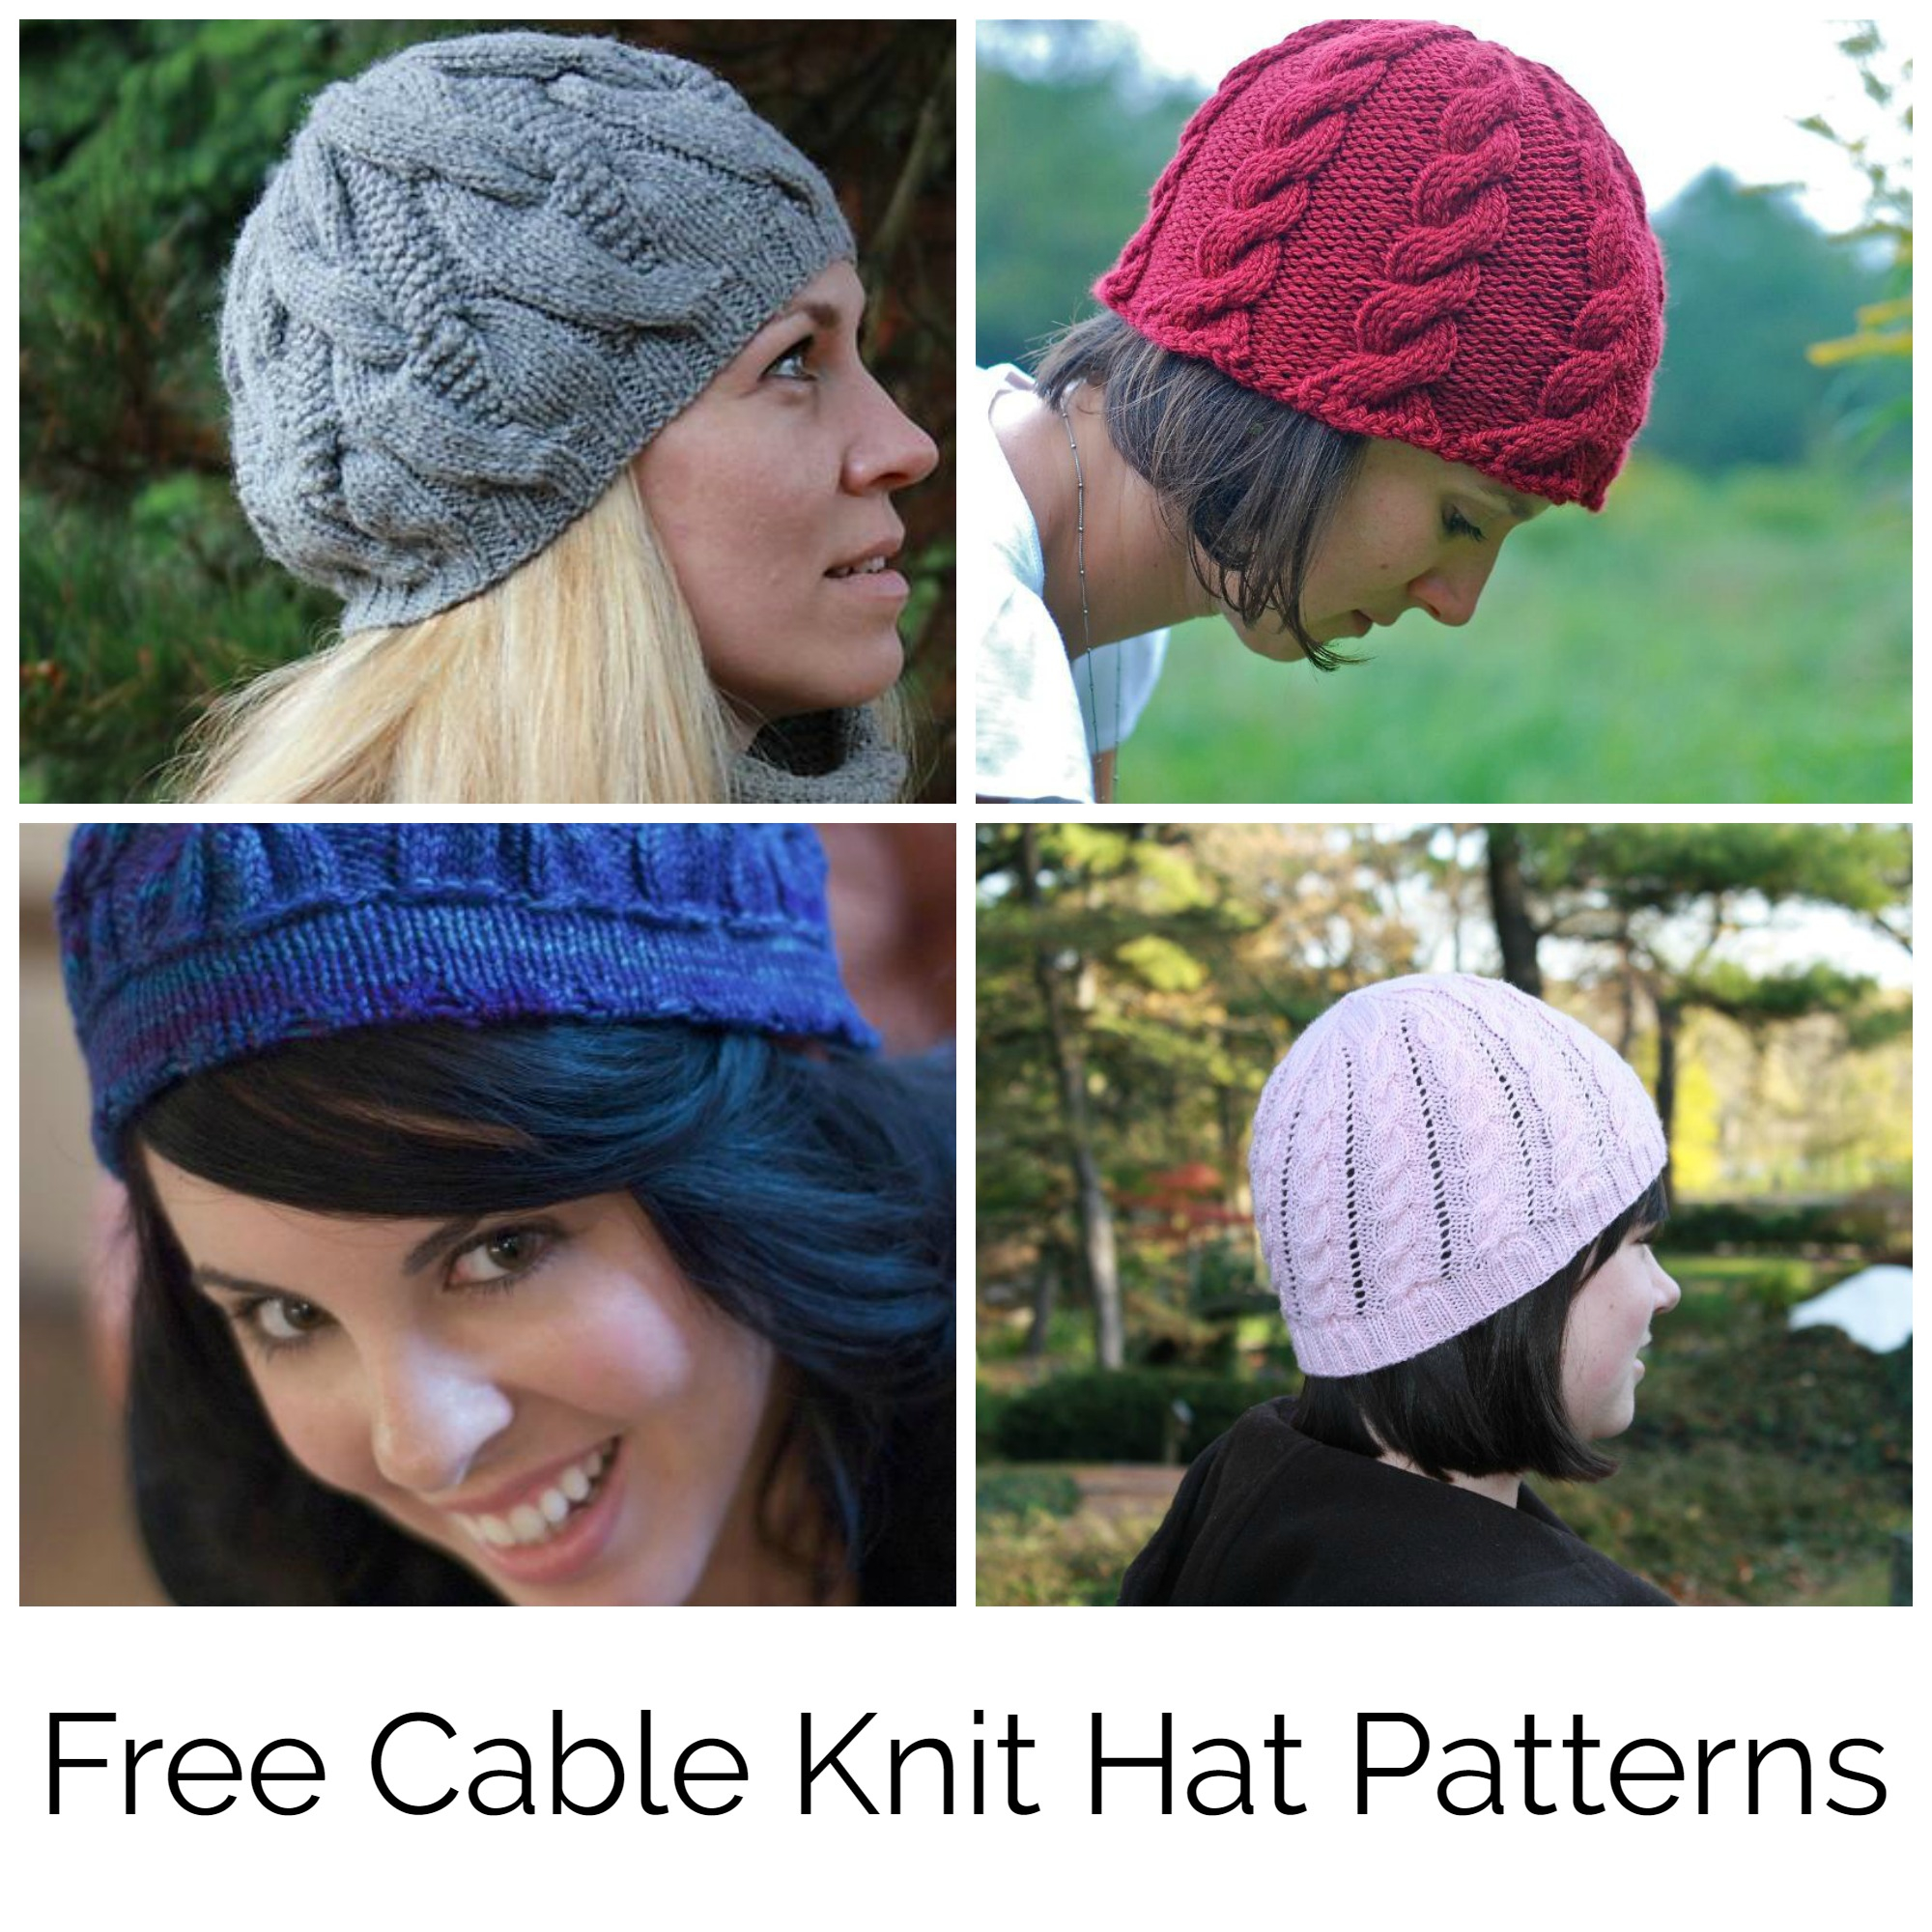 Knitted Hats Patterns Find Your Favorite Free Cable Knit Hat Pattern